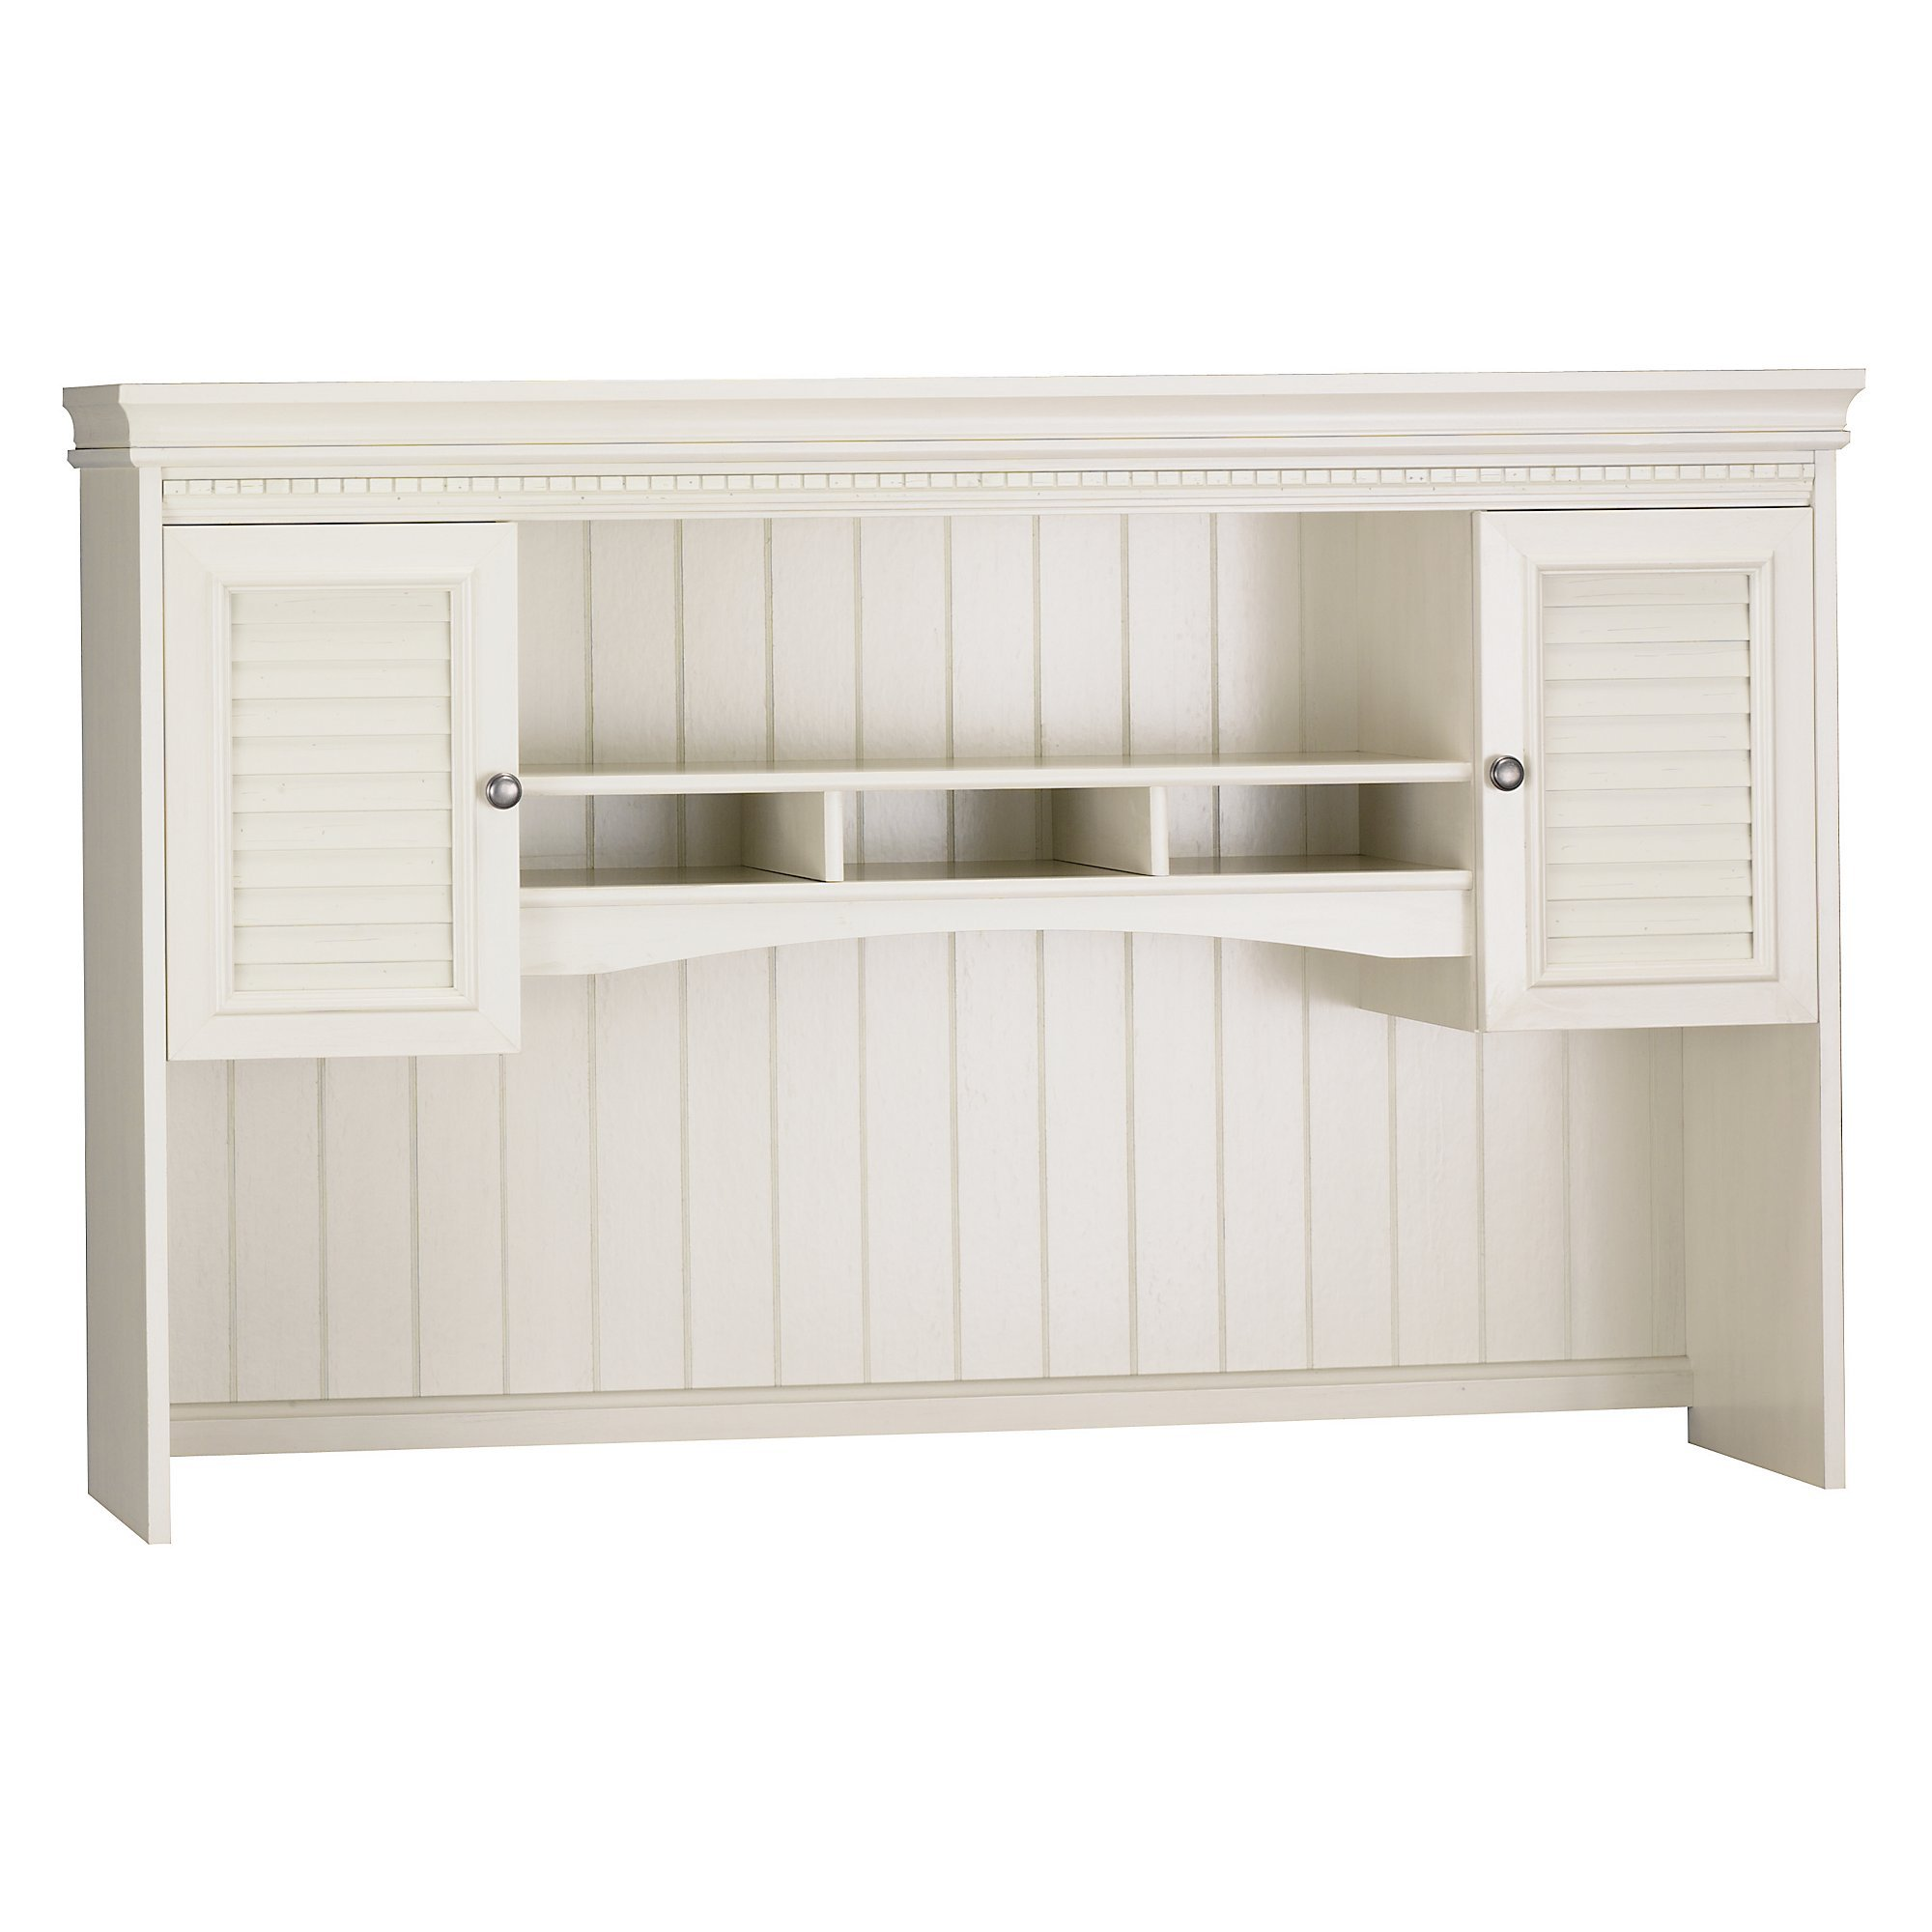 white in line fairview hutch shaped desk antique at l get shopping deals find guides on quotations cheap for